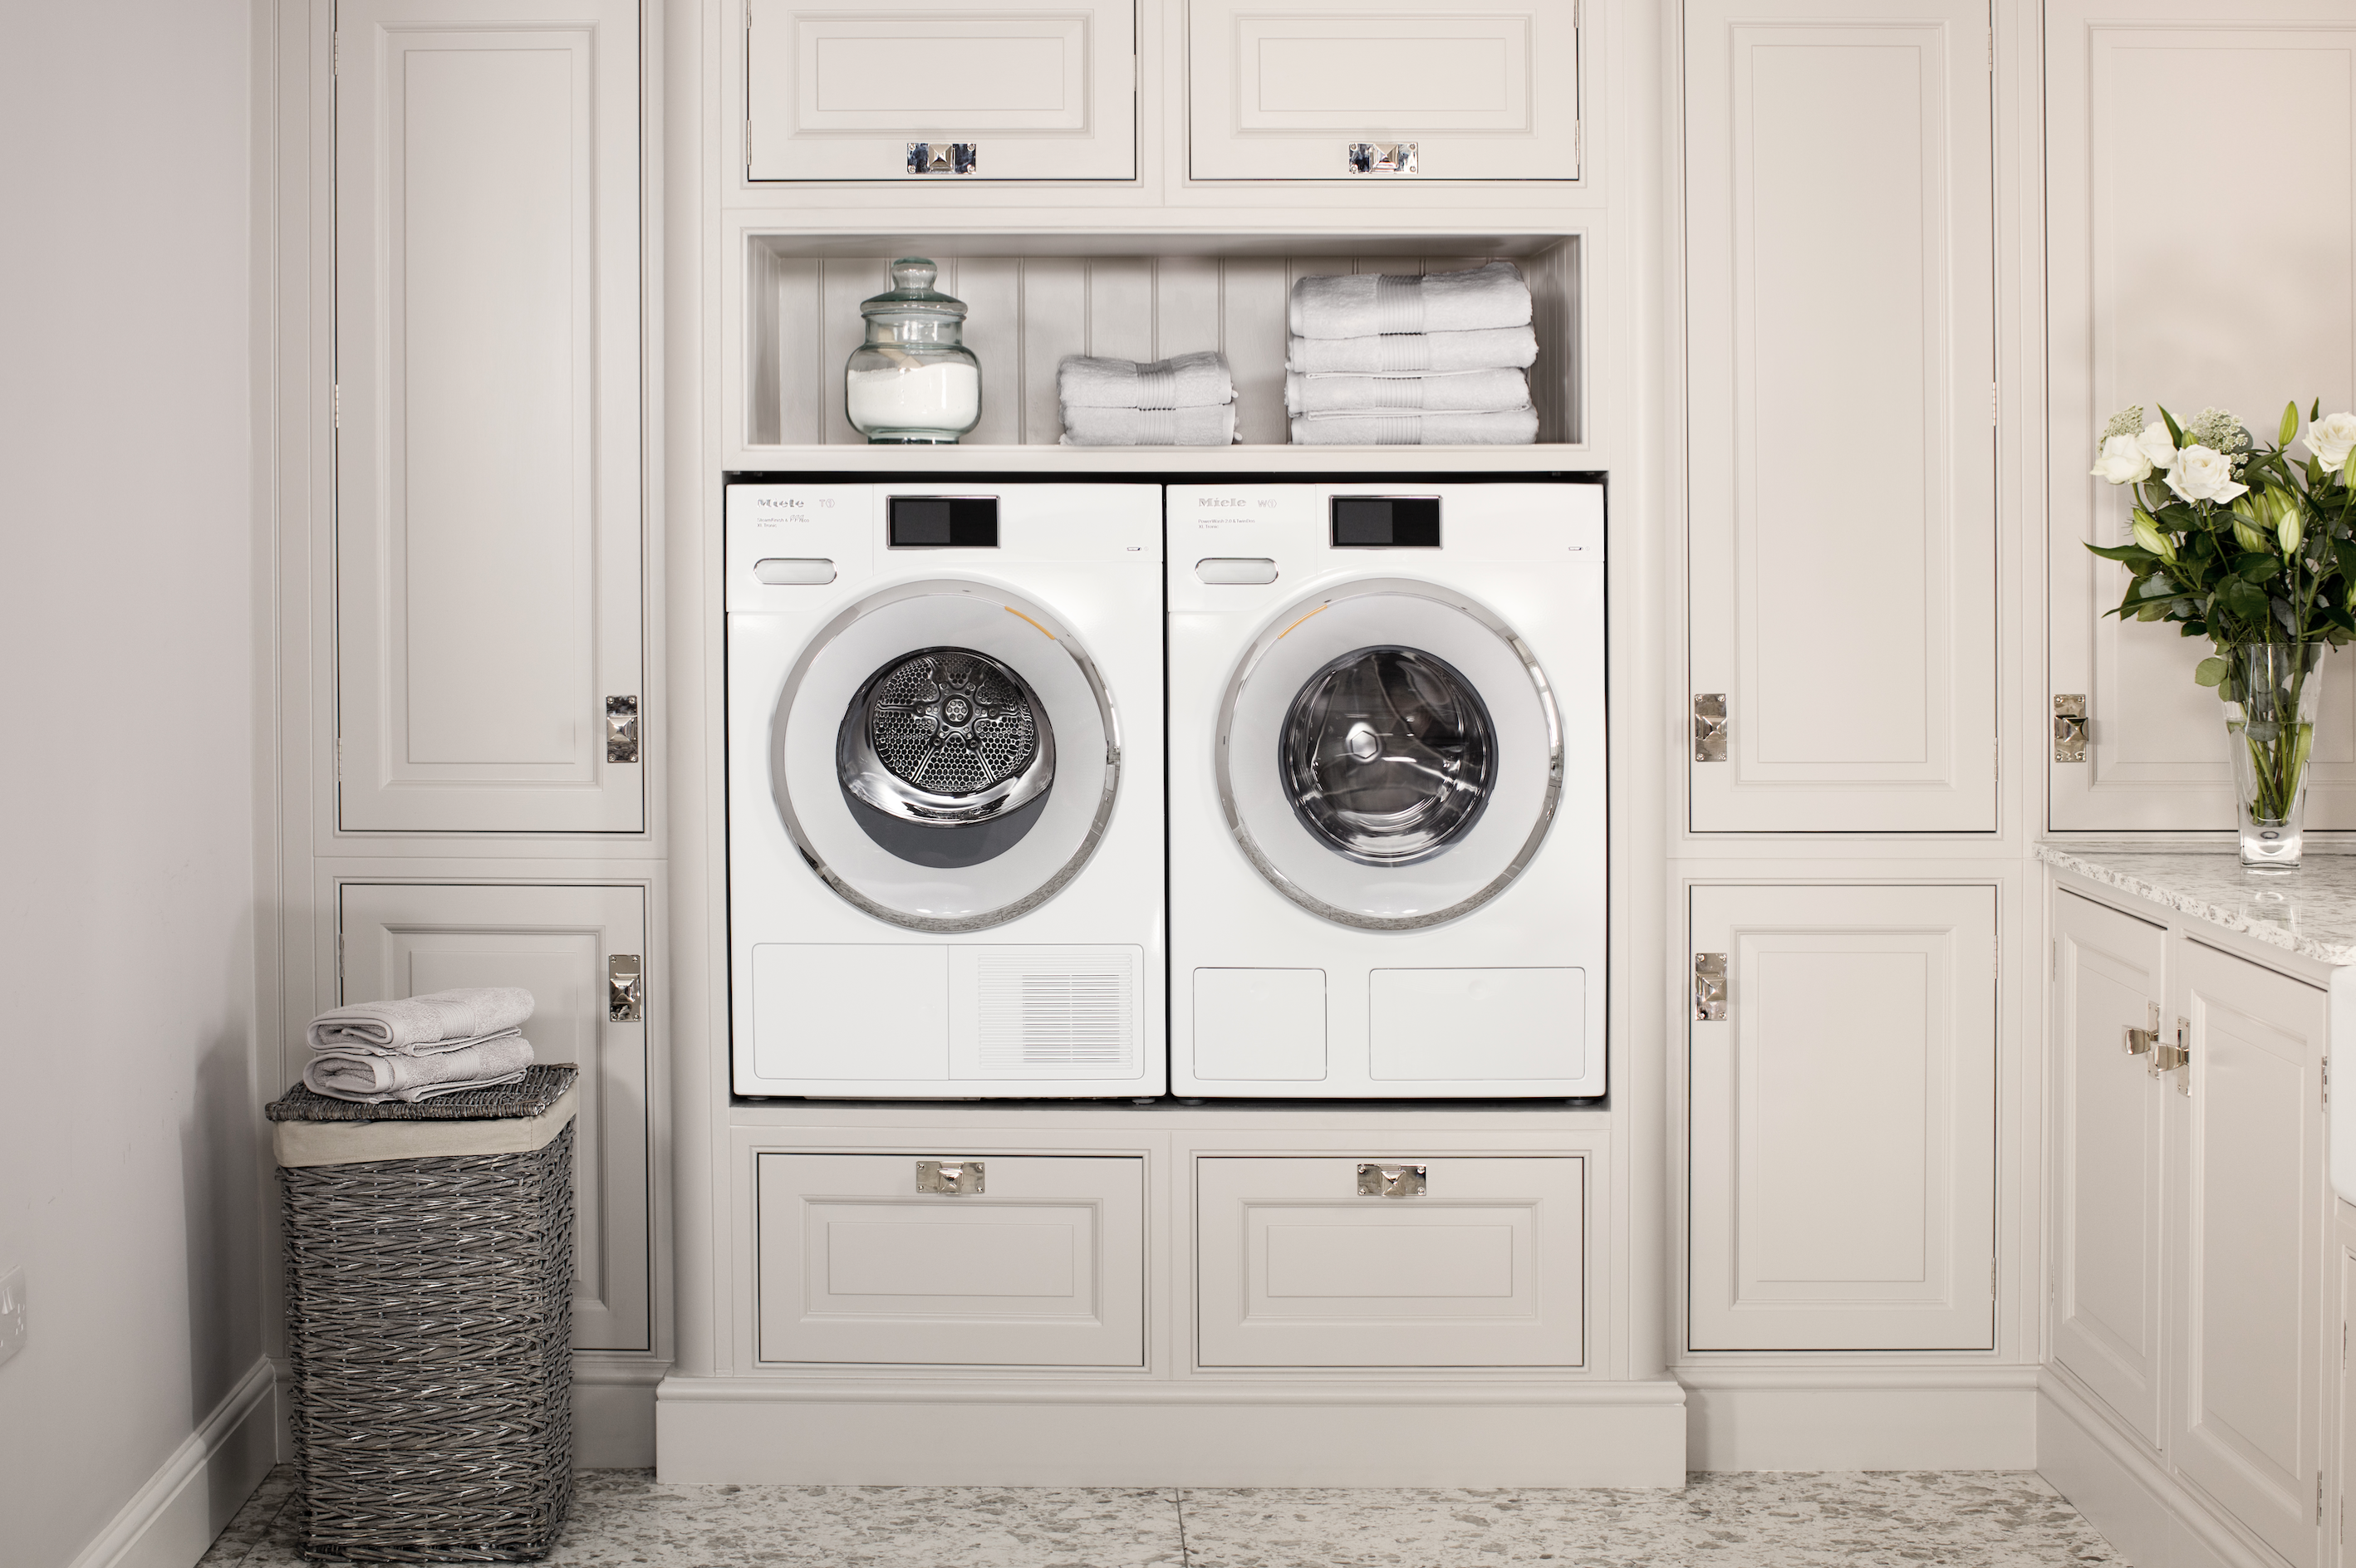 Appliances Installed At Eye Level Or Body Height Offer A